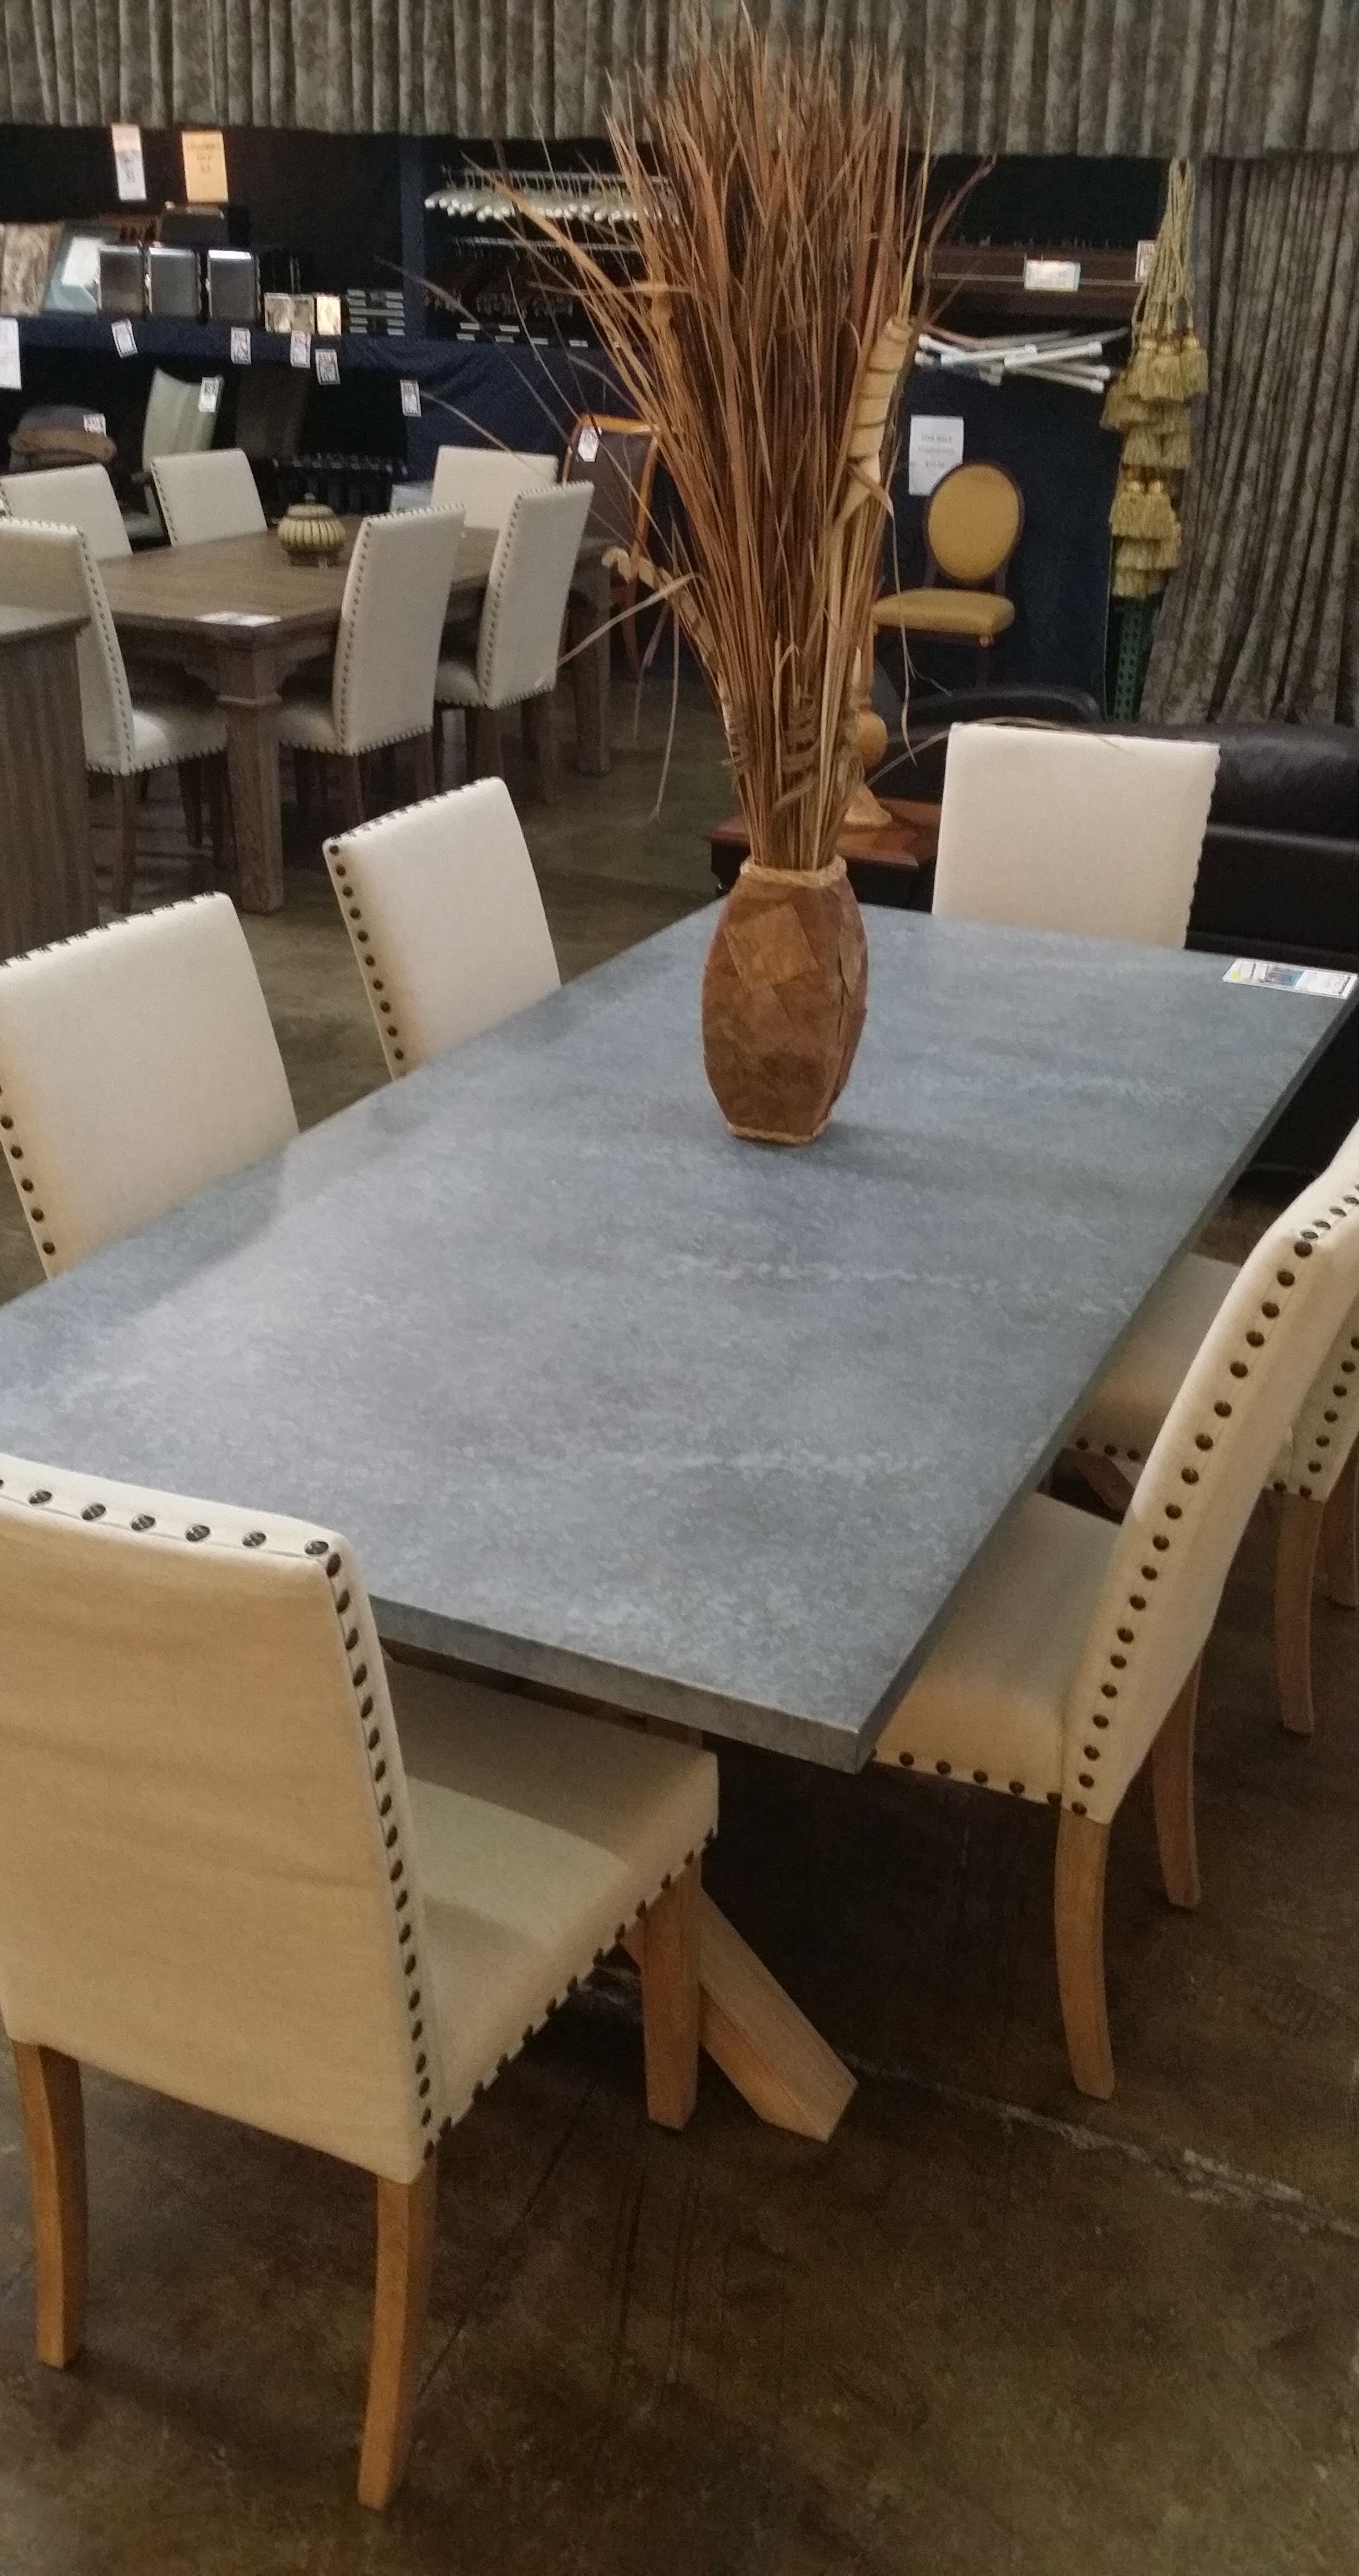 Two different styles of dining room tables with these